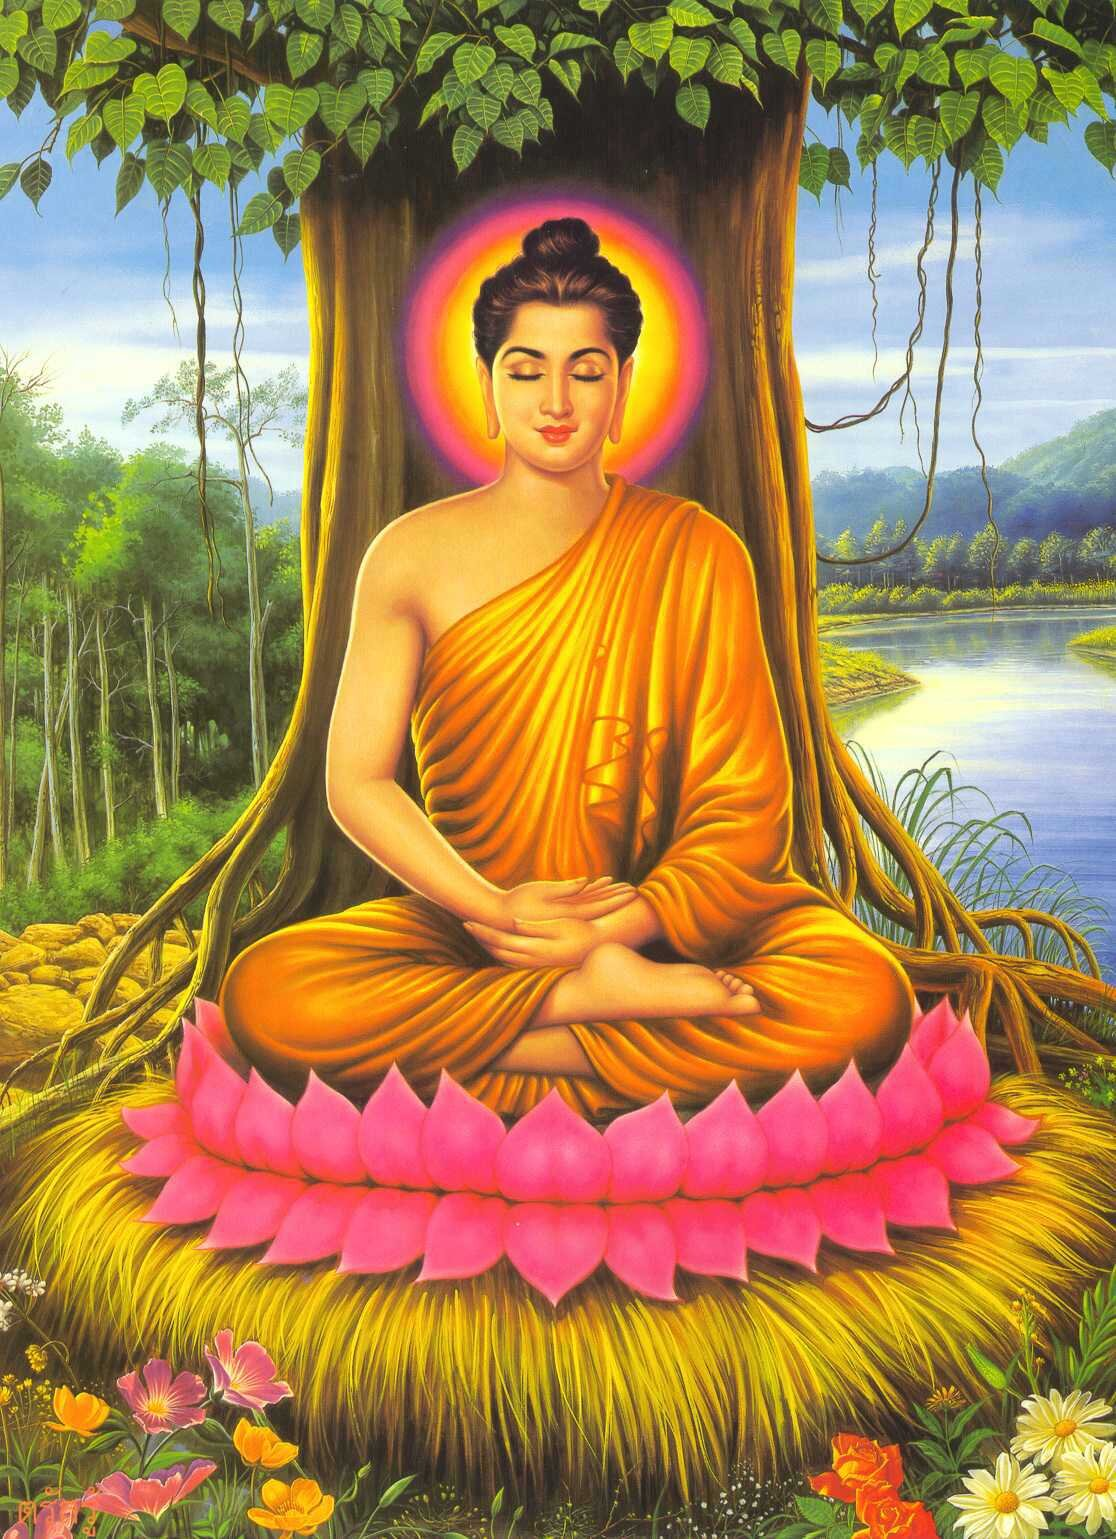 contributions of siddhartha gautama to buddhism Siddhartha gautama accepted as its close disciples some secular they had the same chance to gain enlightenment, without practicing rituals, and without believing in everything he said or did.